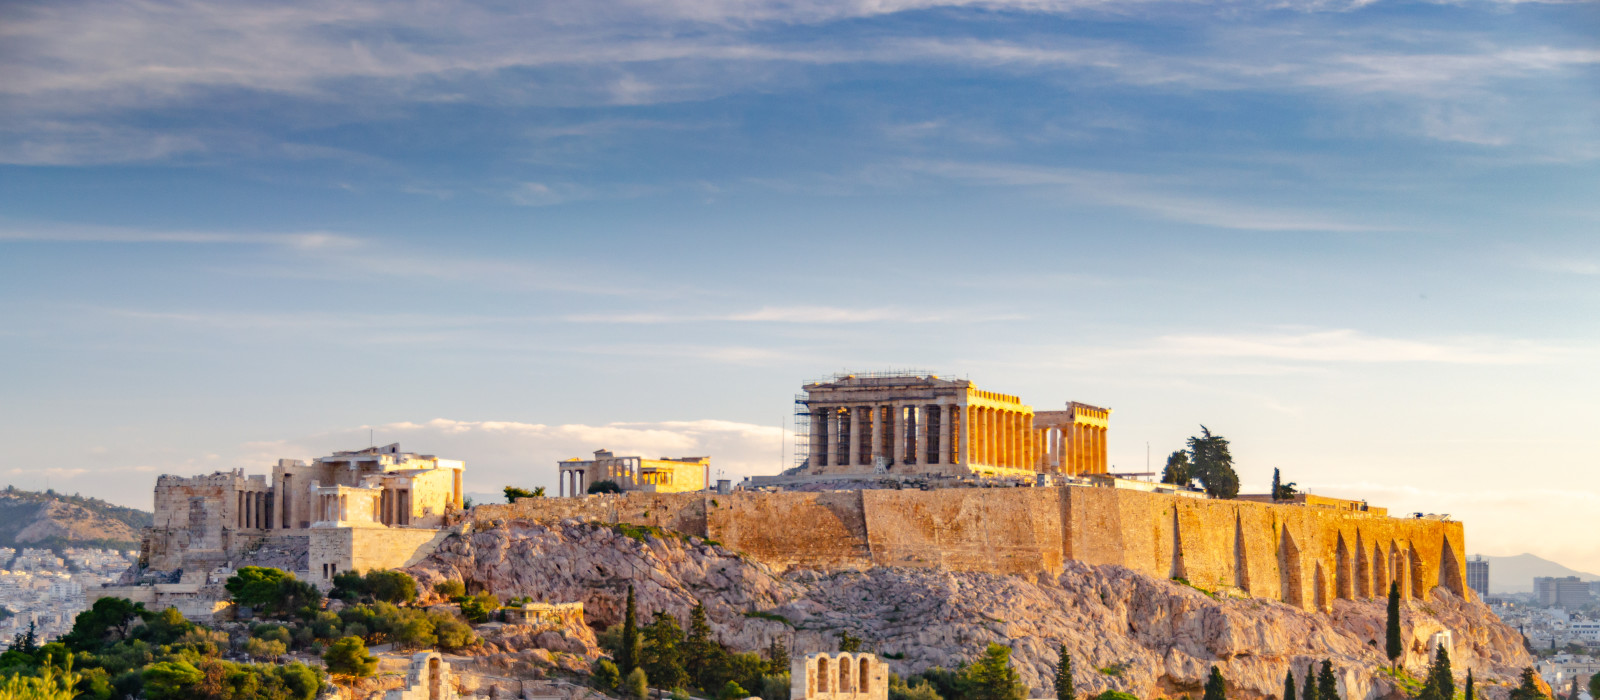 Athens Acropolis - Greece Vacation